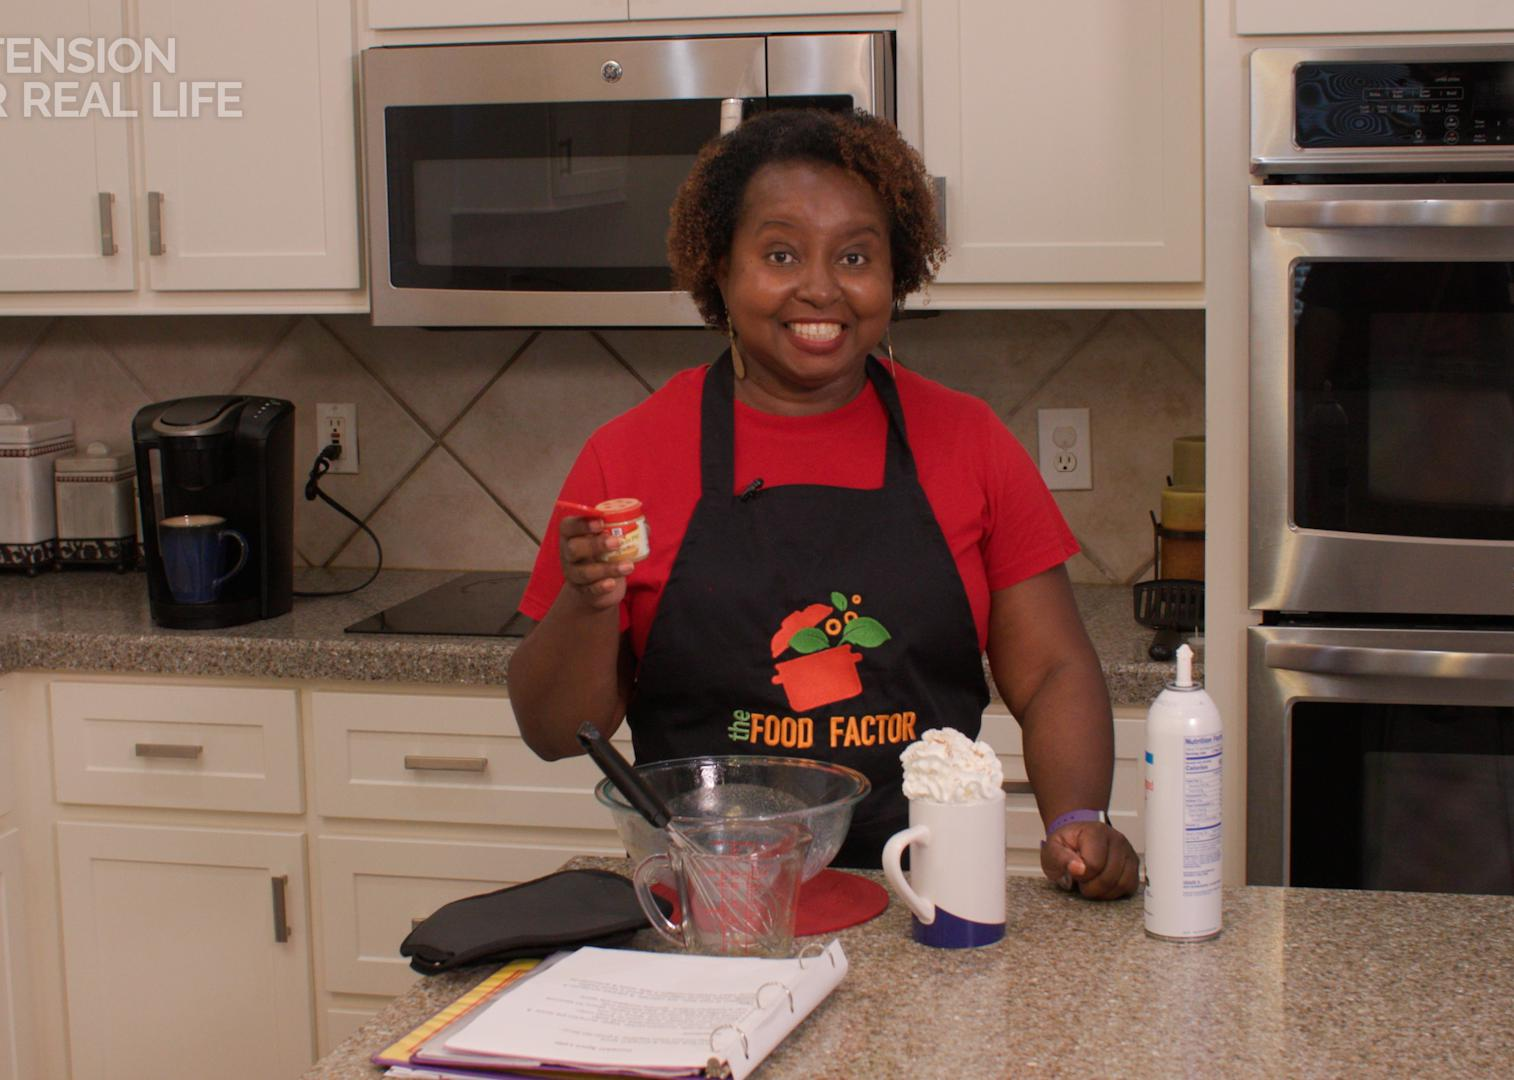 A woman stands at a kitchen counter with a latte.